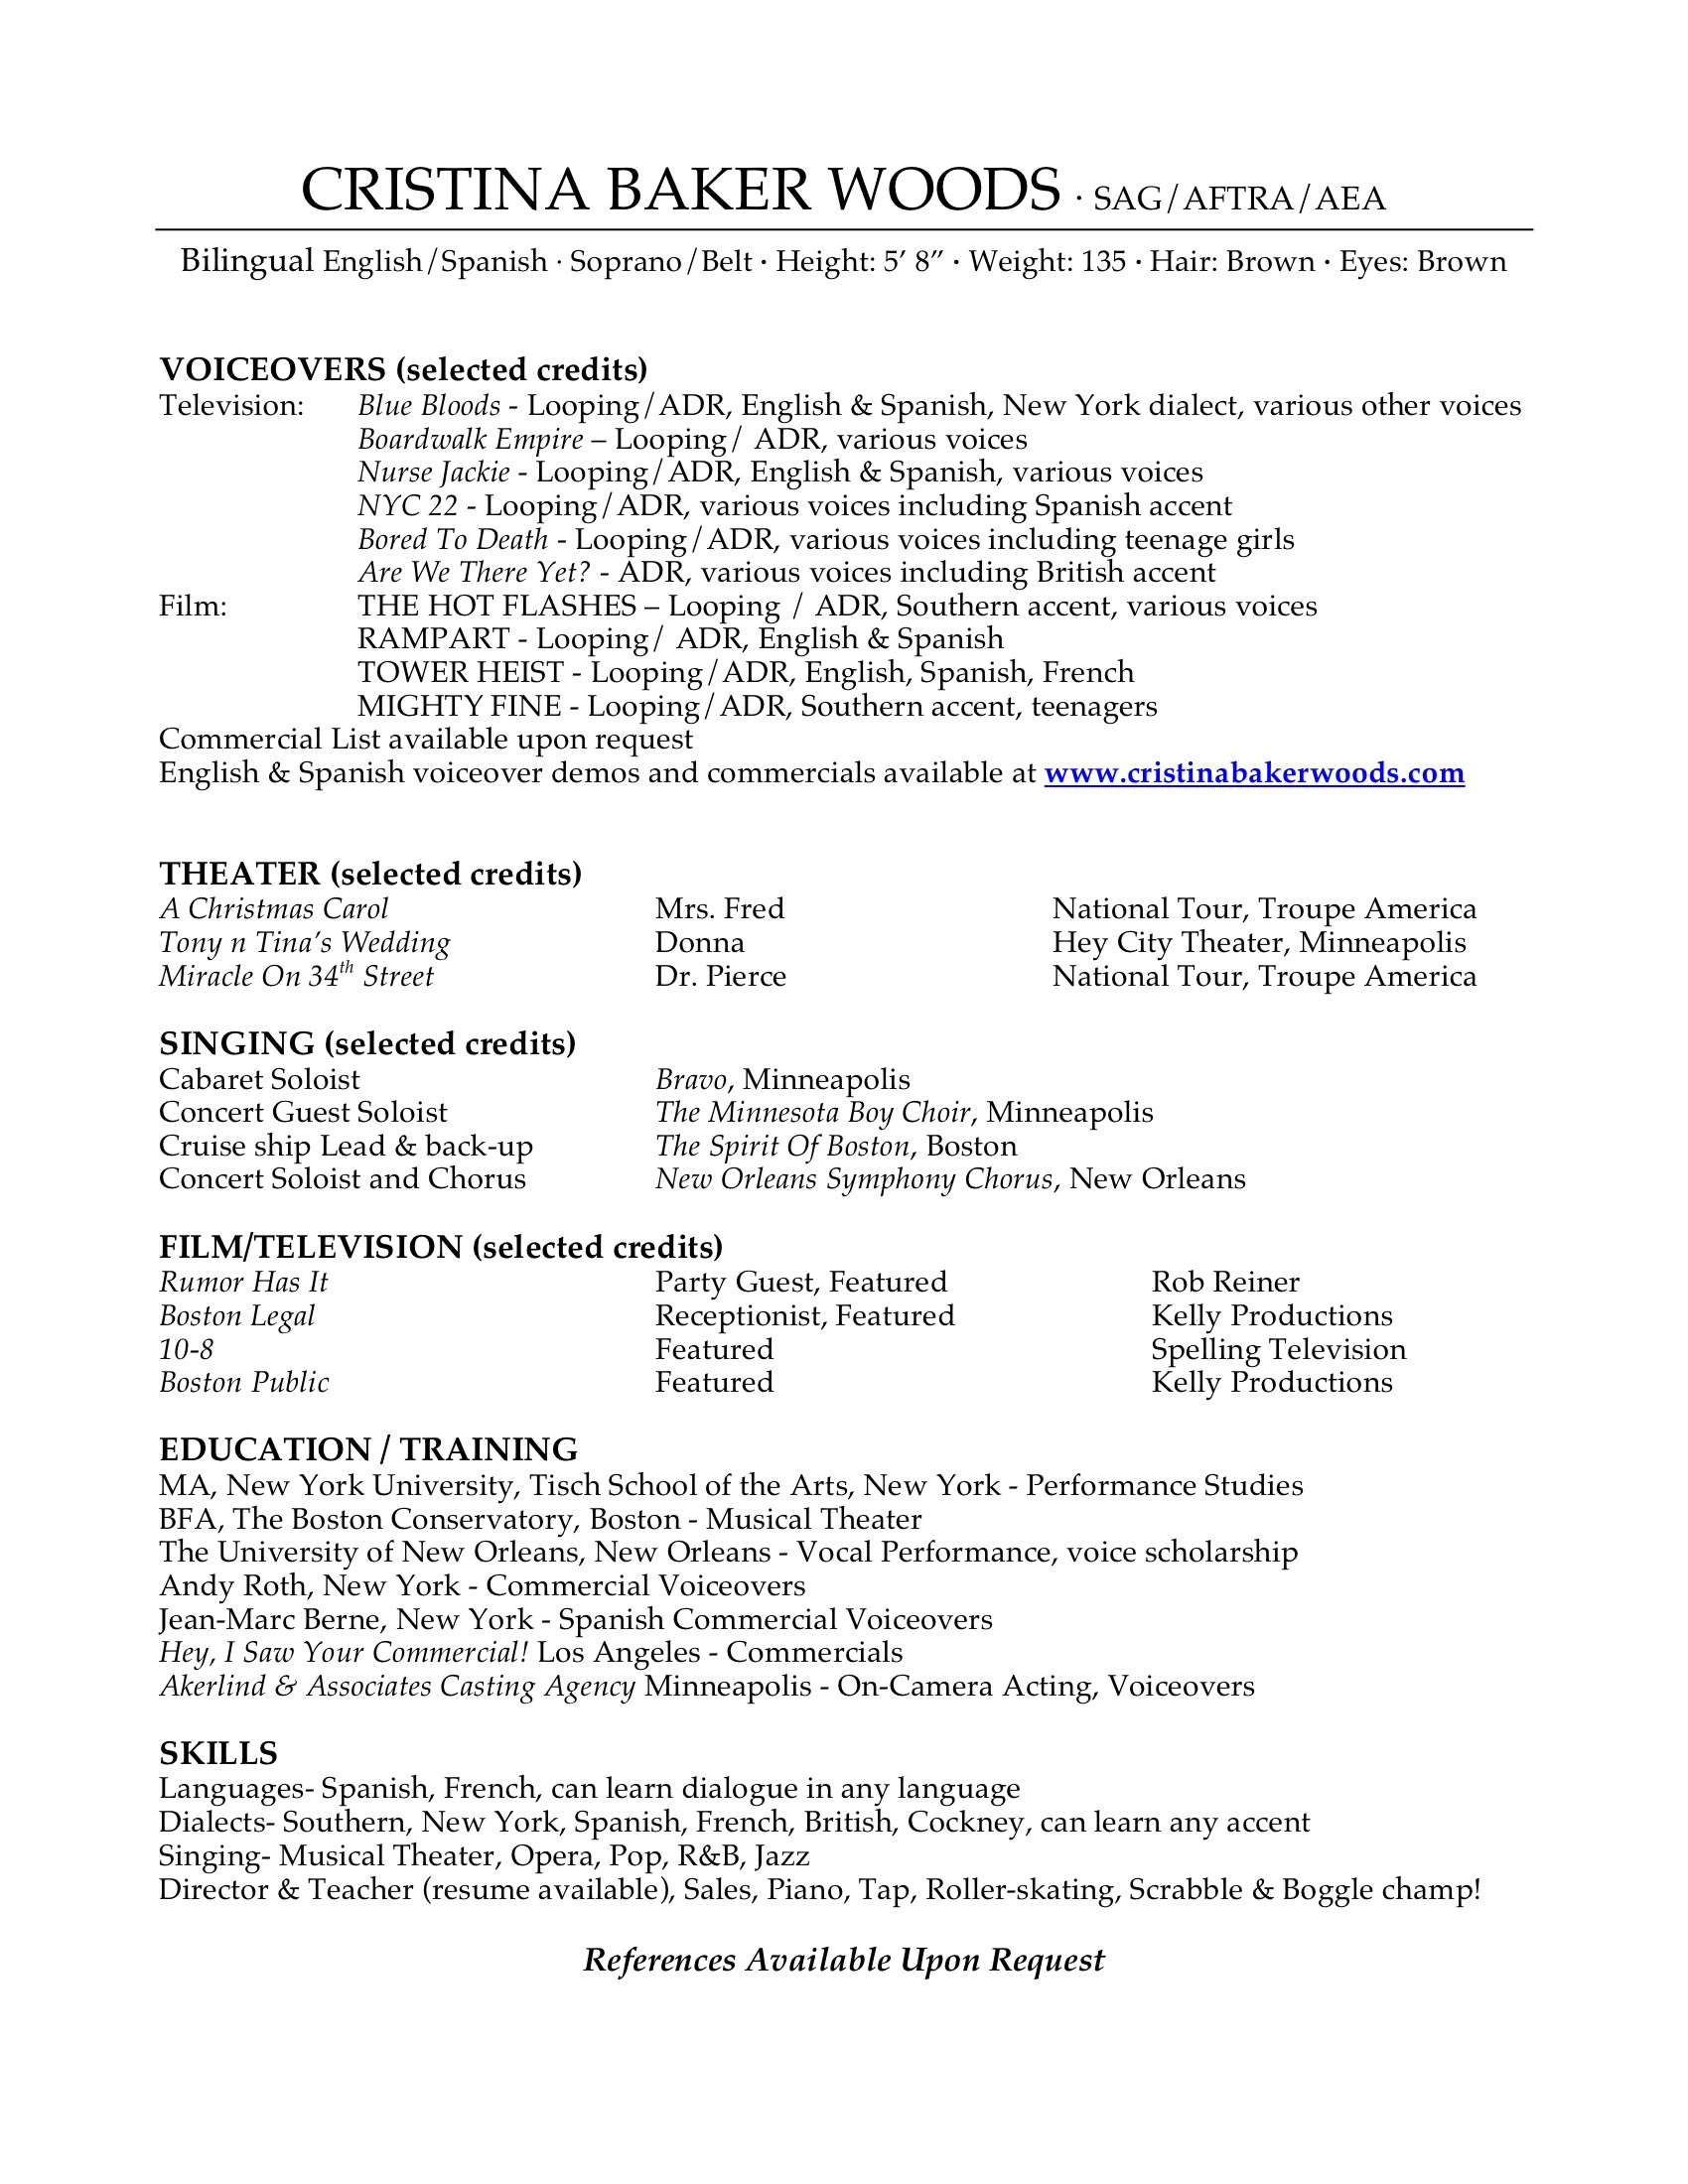 voiceover acting singing resume cristina baker woods